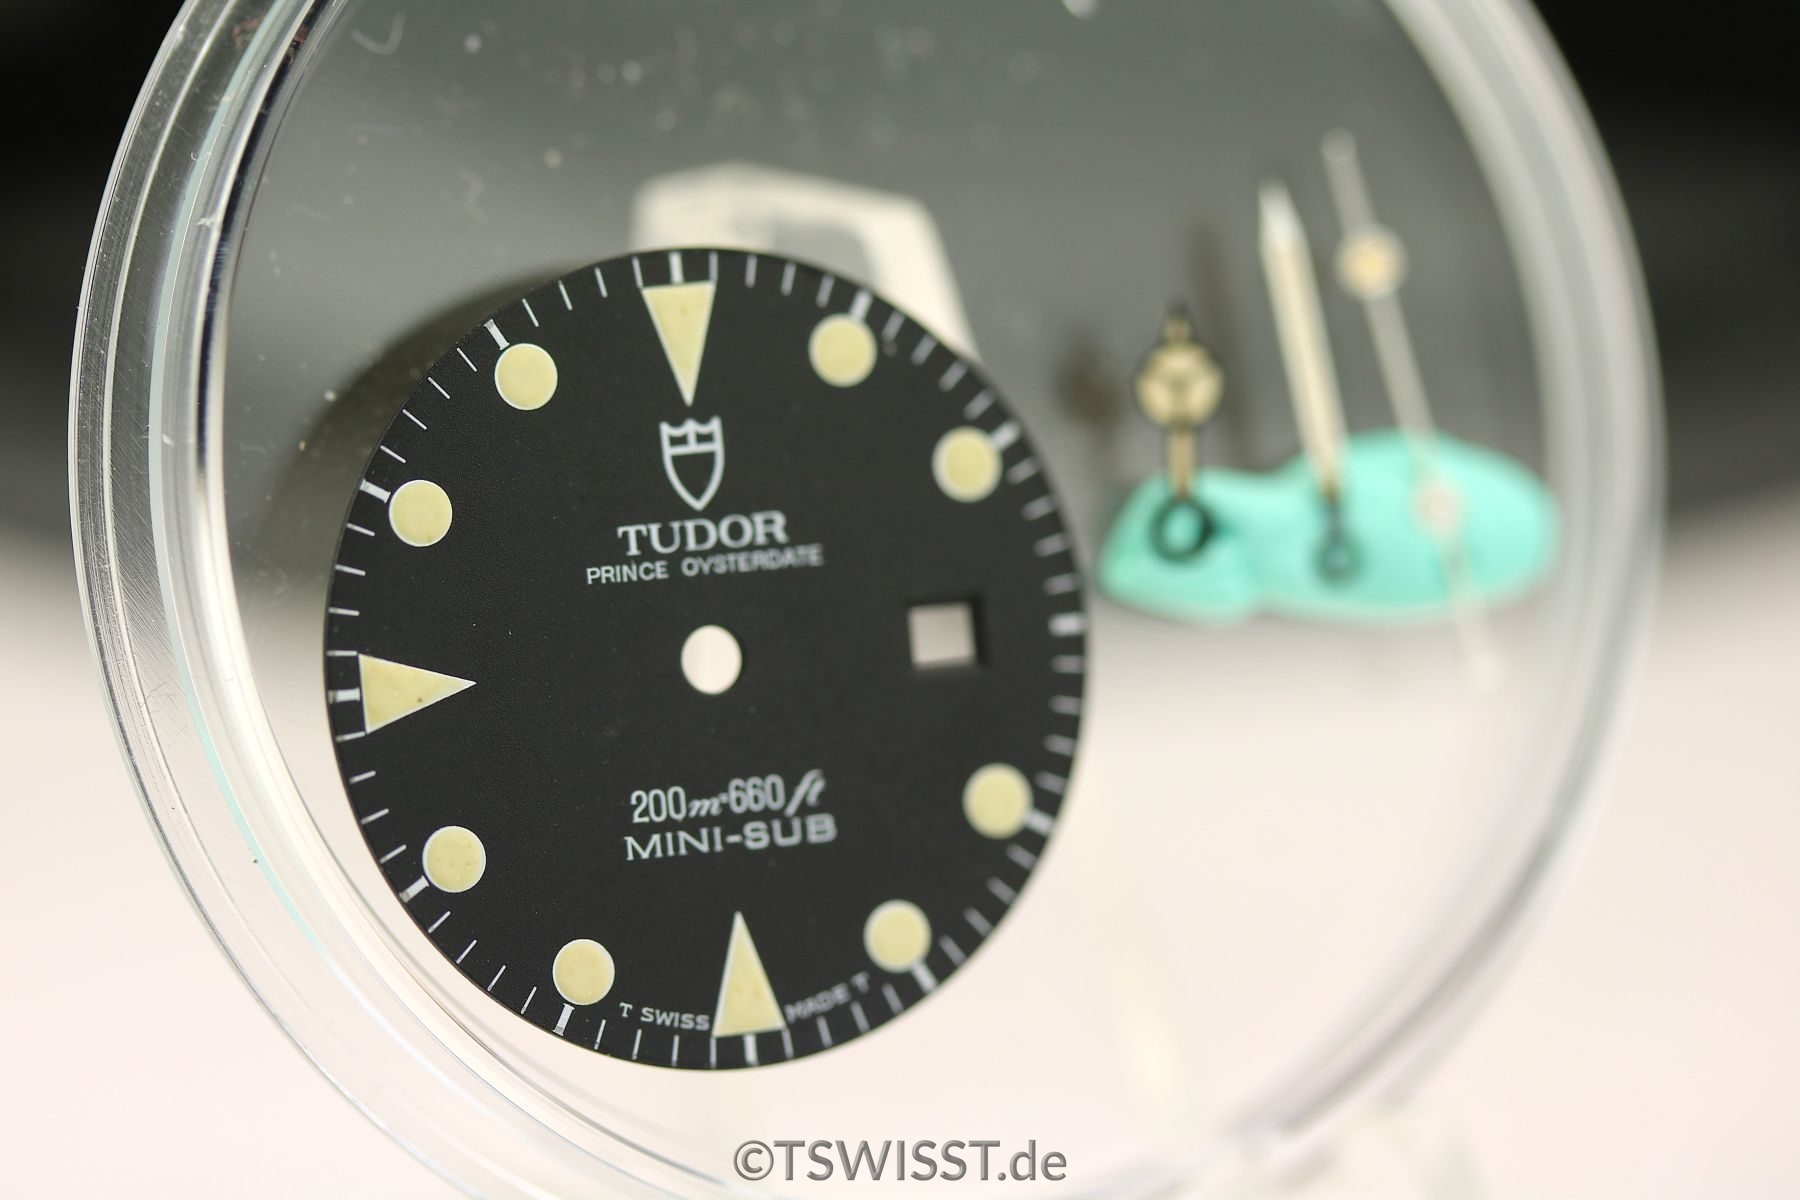 Tudor Mini-Sub dial&hands